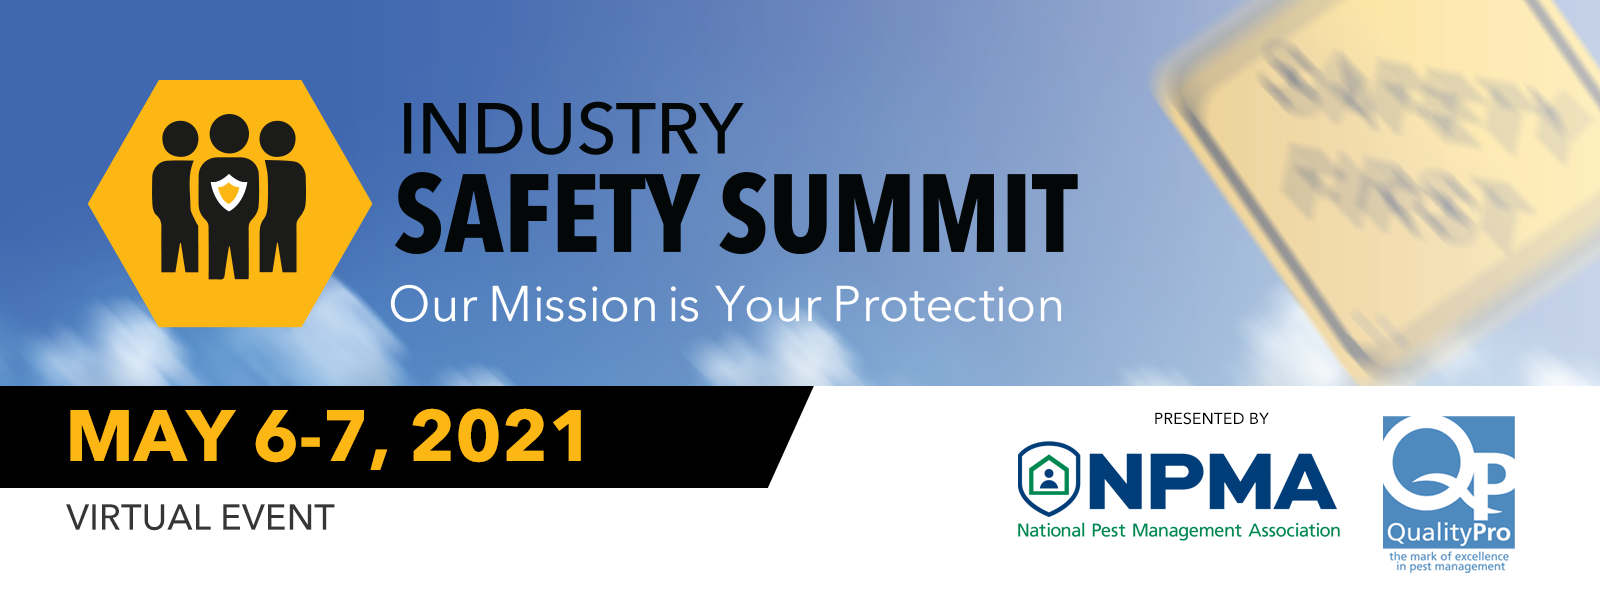 Industry Safety Summit